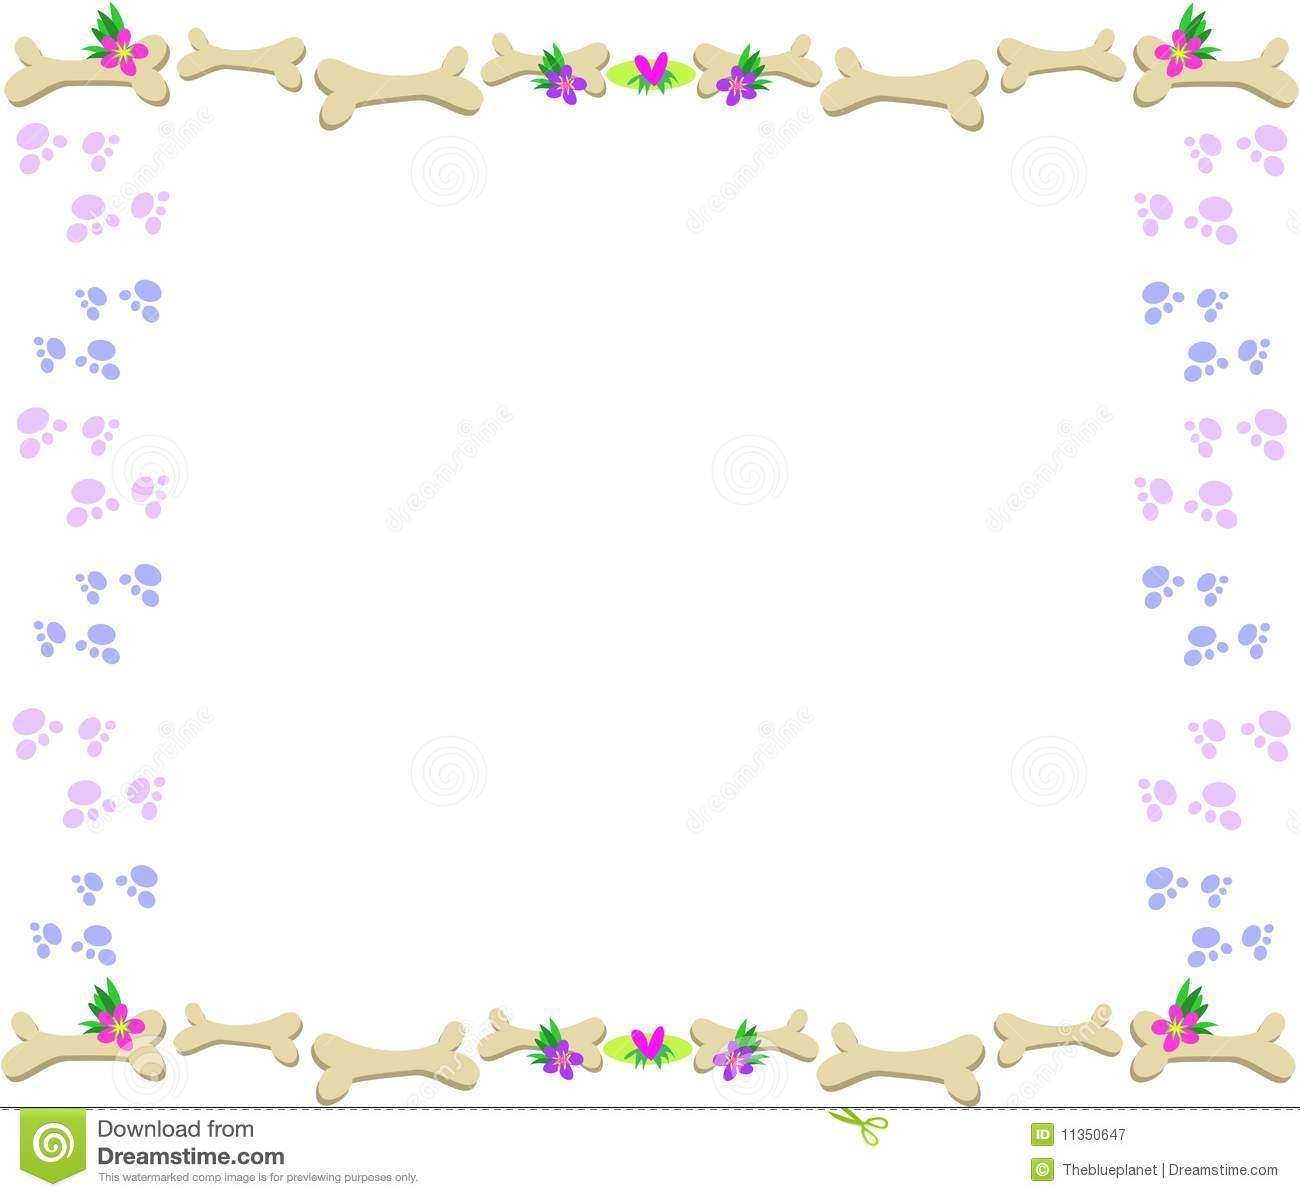 ... Free Stock Photography: Frame of Bones, Paw Prints, Flowers and Hearts